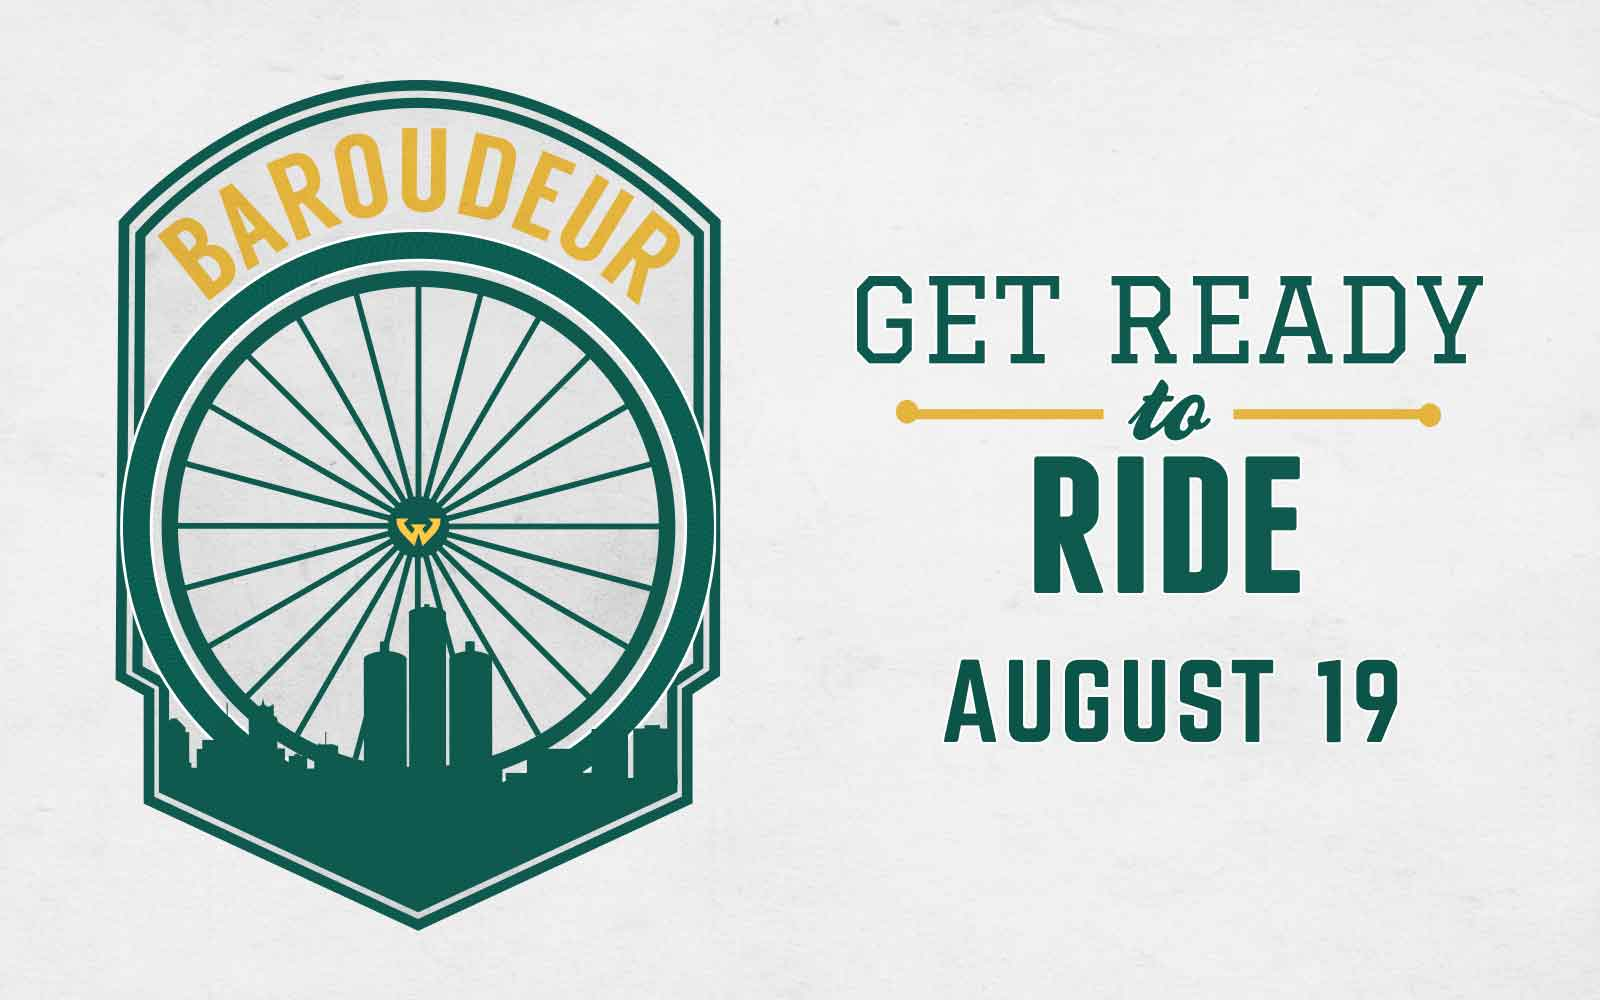 Register for Wayne State's cycling event benefiting student scholarships